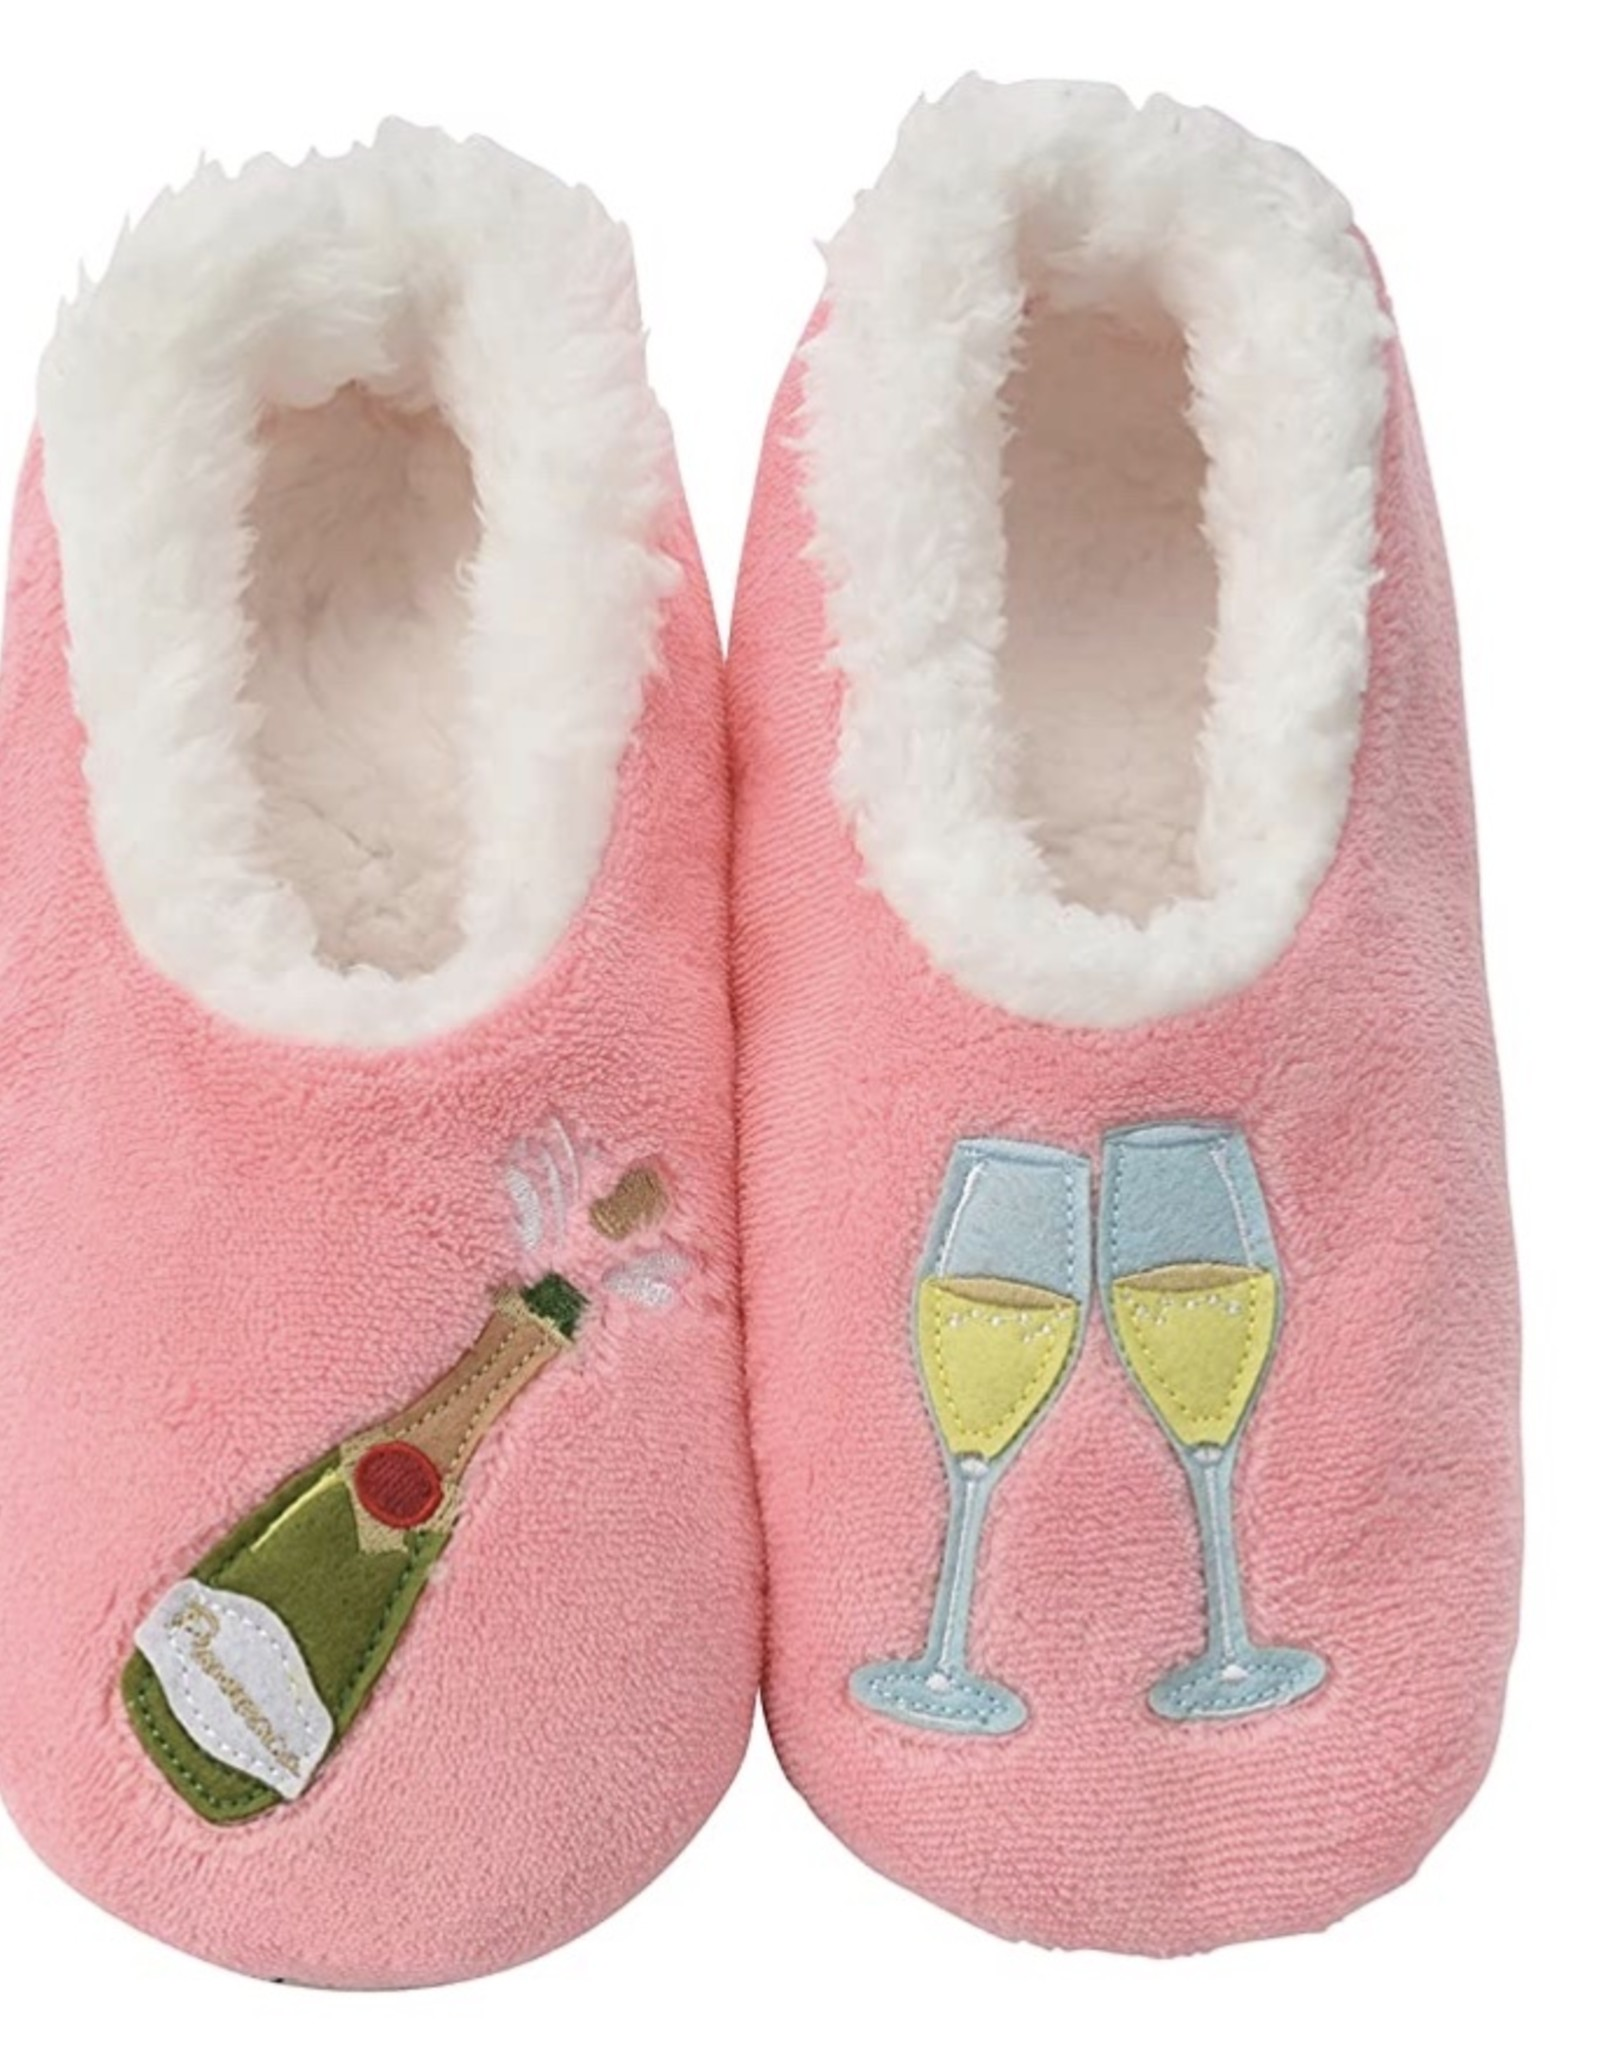 Prosecco Snoozies